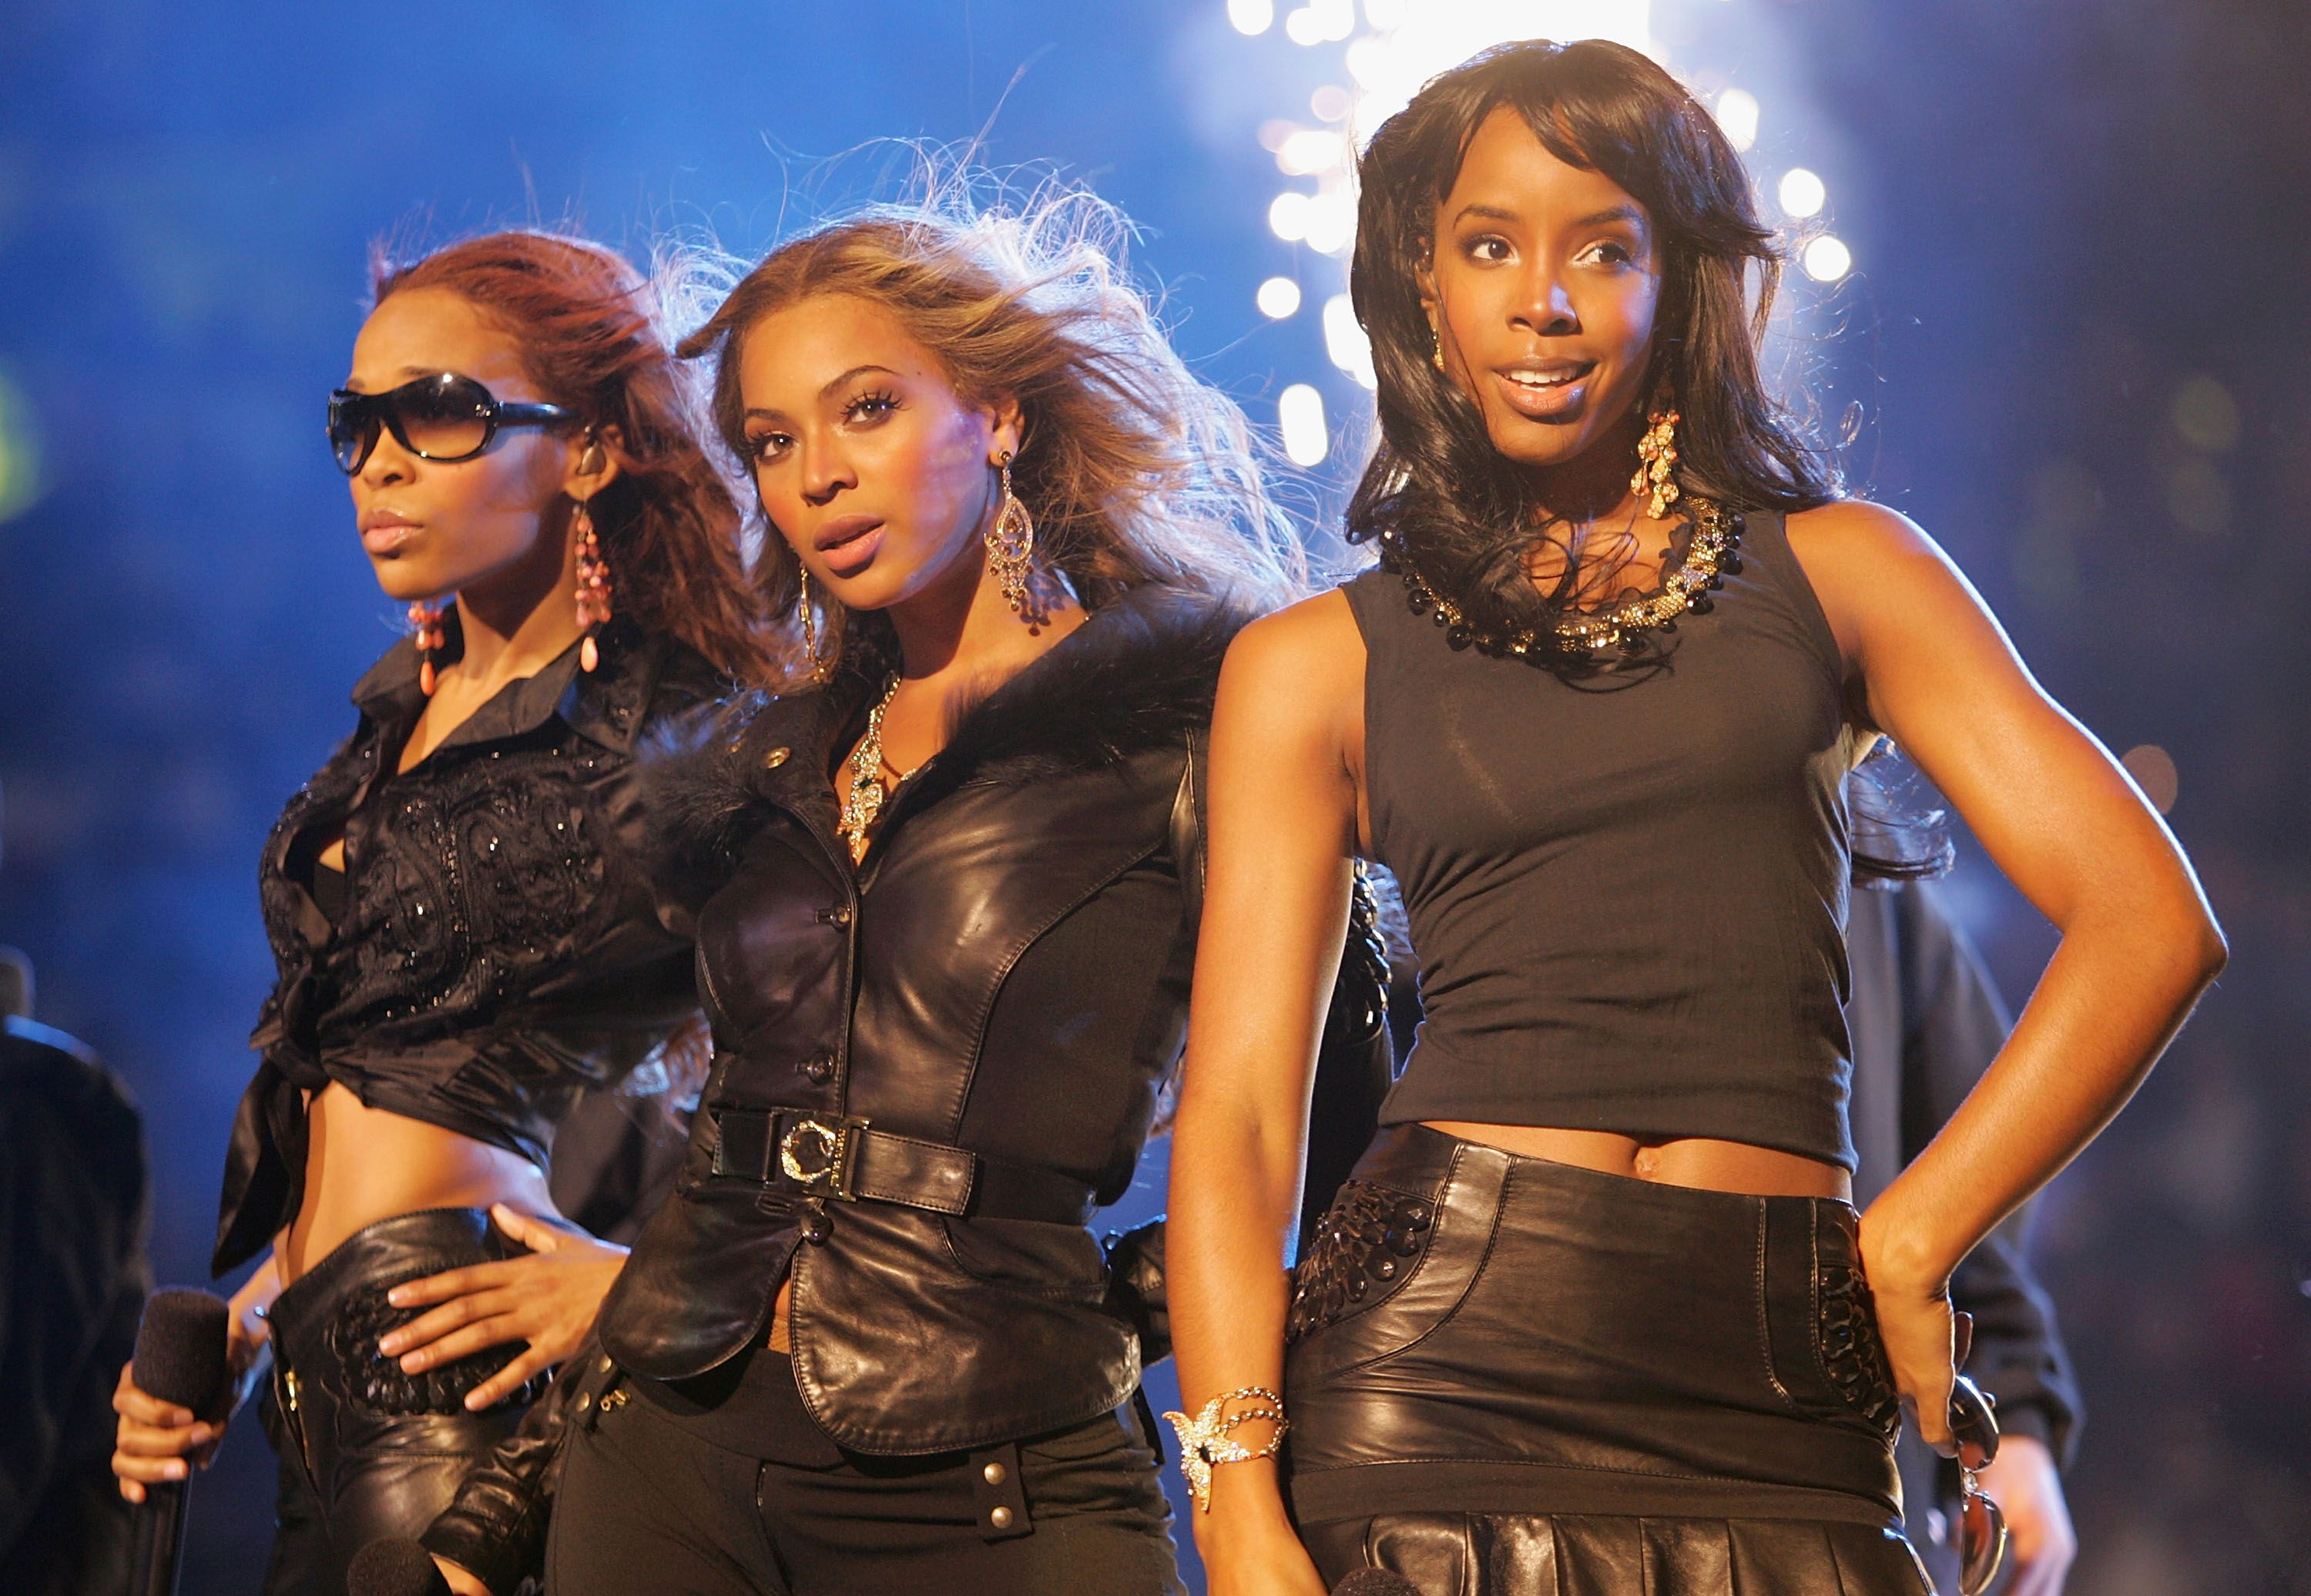 Kelly Rowland, Beyoncé Knowles and Michelle Williams performing as Destiny's Child at the 2005 NBA All Star Game in Denver, Colorado | Source: Getty Images